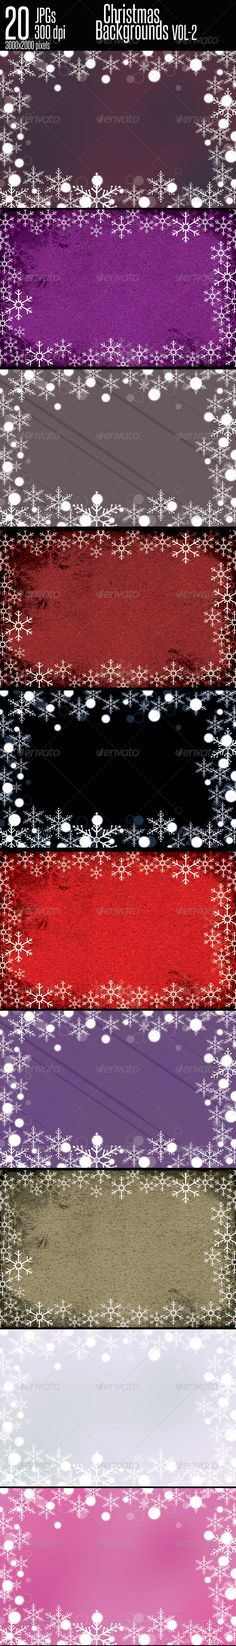 Christmas Backgrounds Vol-2  #GraphicRiver         These are clean Christmas backgrounds where snowflakes move round the boarder, as well as bokeh effect at boarder gives additional beauty.    File Details:  20 JPGs 3000×2000 pixels (10×6.667 inches)  300 dpi CMYK Print Ready If you like it please rate it with stars Lights & Flares Collection               BLURRED BACKGROUNDS     Grunge Background Collection       Soft Grunge Background Collection      BACKGROUNDS JUST FOR $2  …